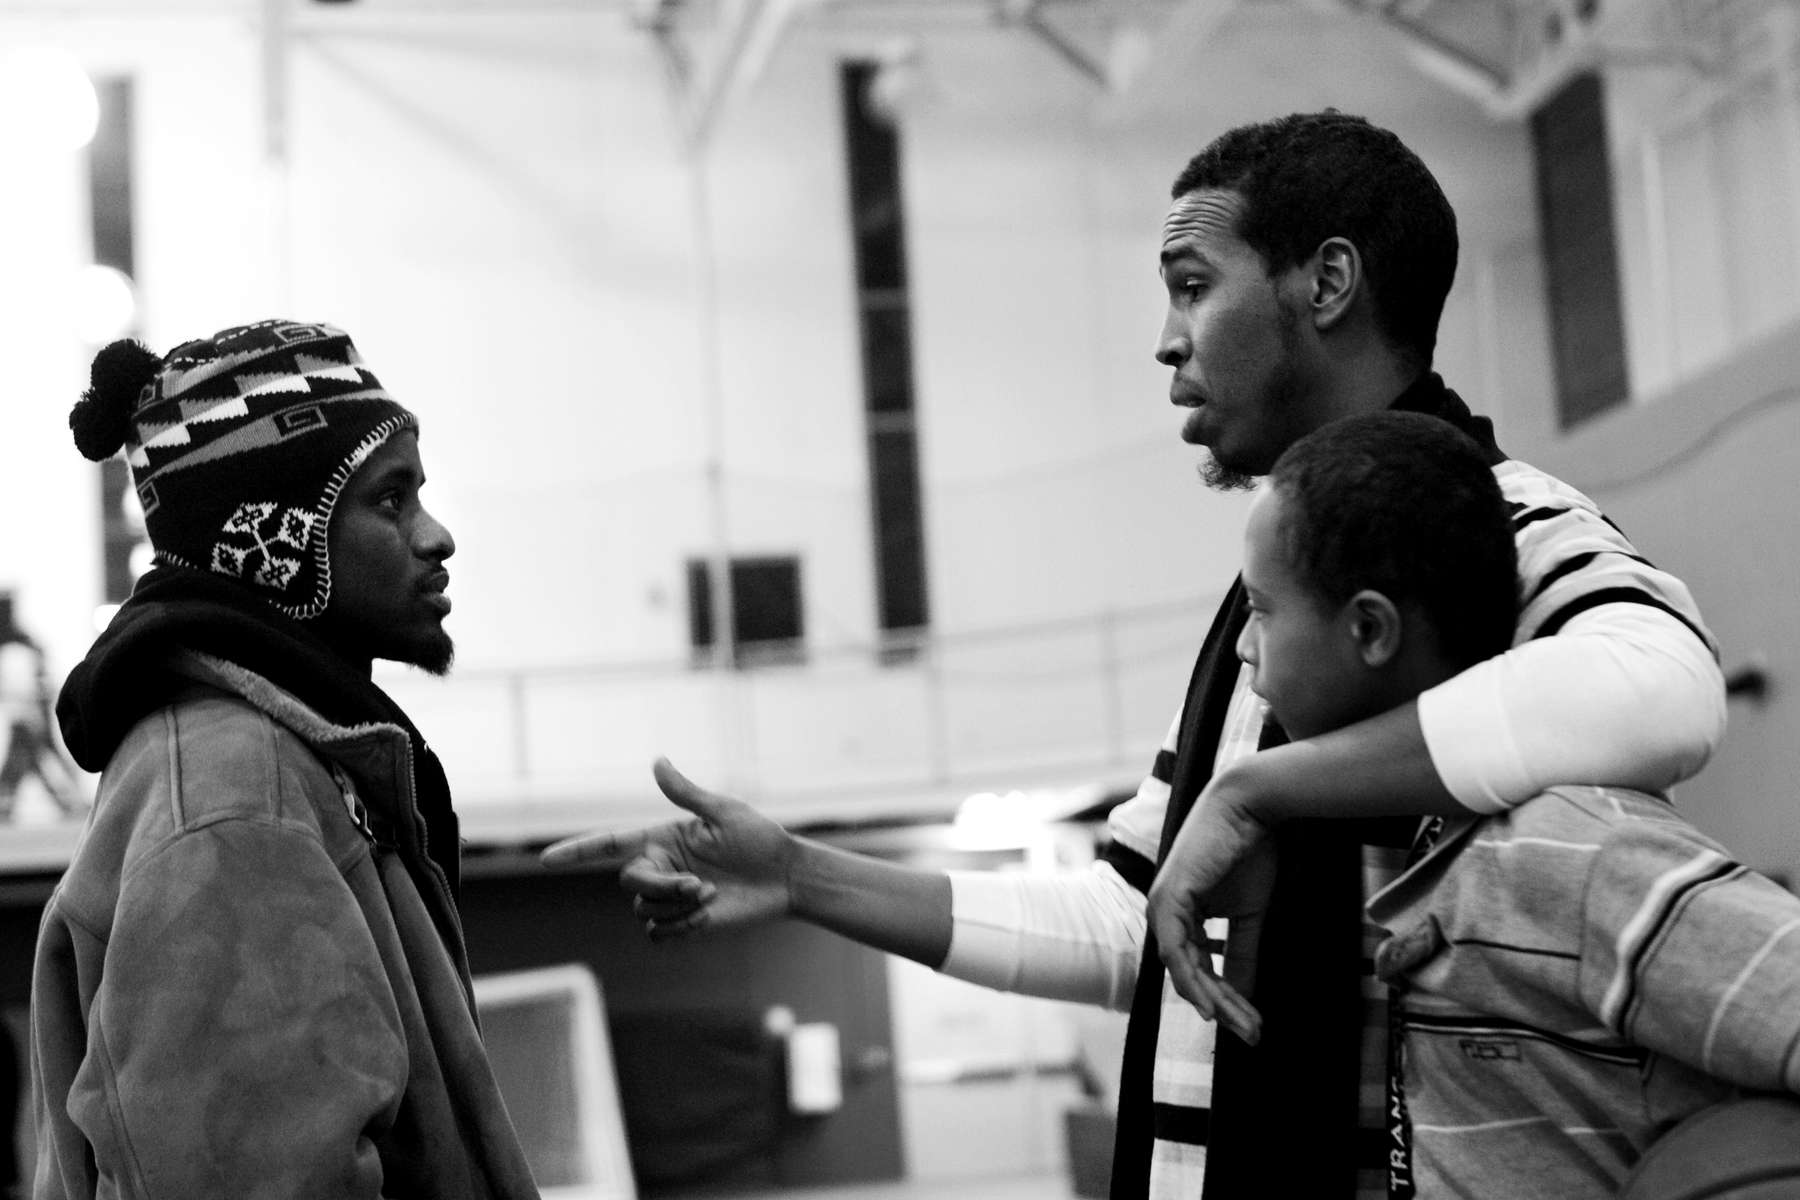 Abdulahi Farah, right, talks with young men during a basketball tournament at the Midtown Y.W.C.A. in Minneapolis. Farah, who established the Somali Youth Network Council, says basketball helps keeps at-risk youth off the streets.